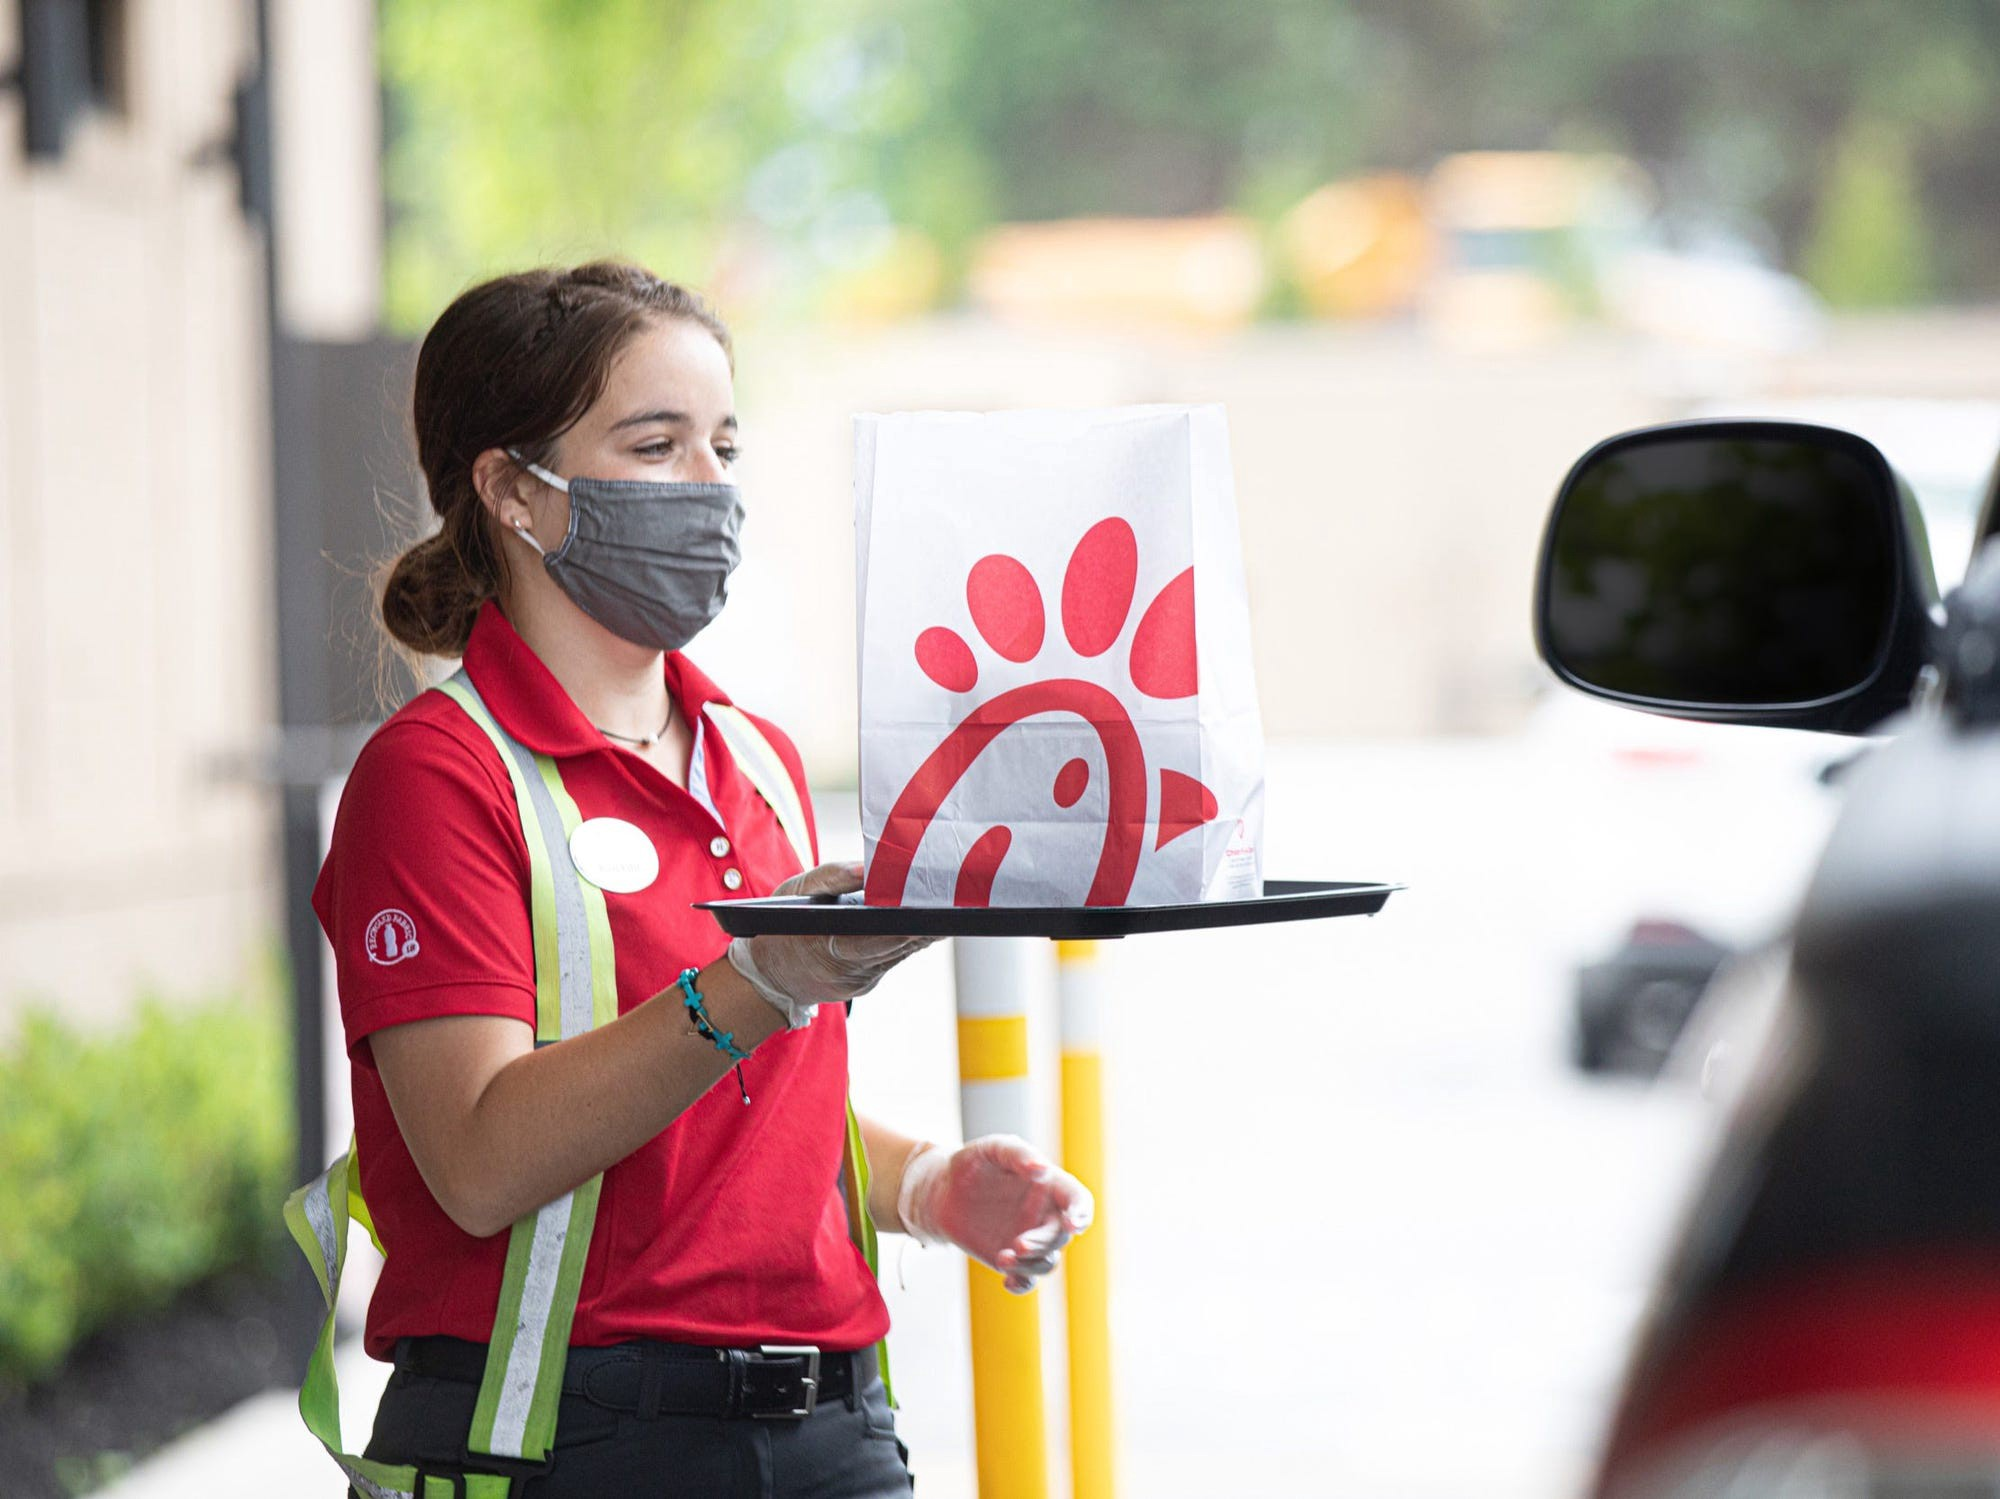 A Chick-fil-A employee delivering food to a drive-thru customer.